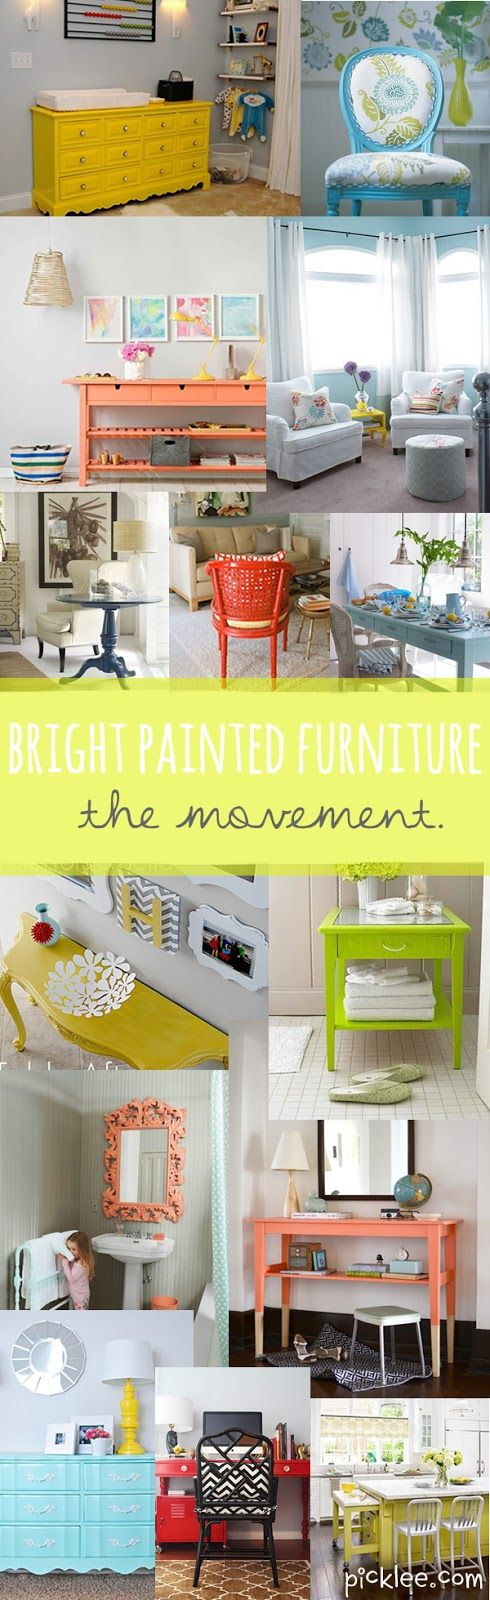 17 best images about revive upcycle repurpose on pinterest for Furniture upcycling course